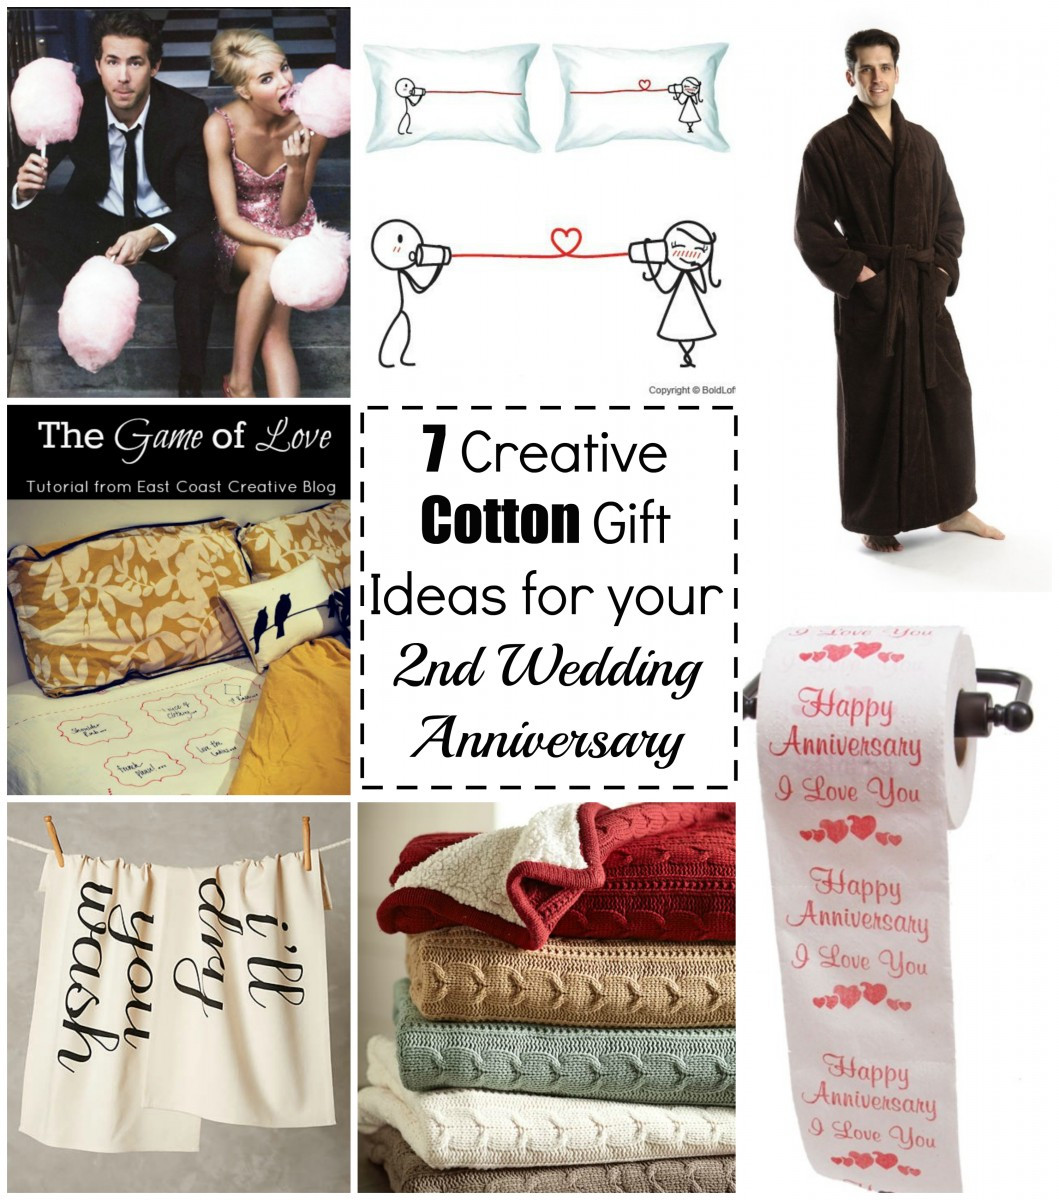 Best ideas about 2Nd Year Anniversary Gift Ideas . Save or Pin 7 Cotton Gift Ideas for your 2nd Wedding Anniversary Now.